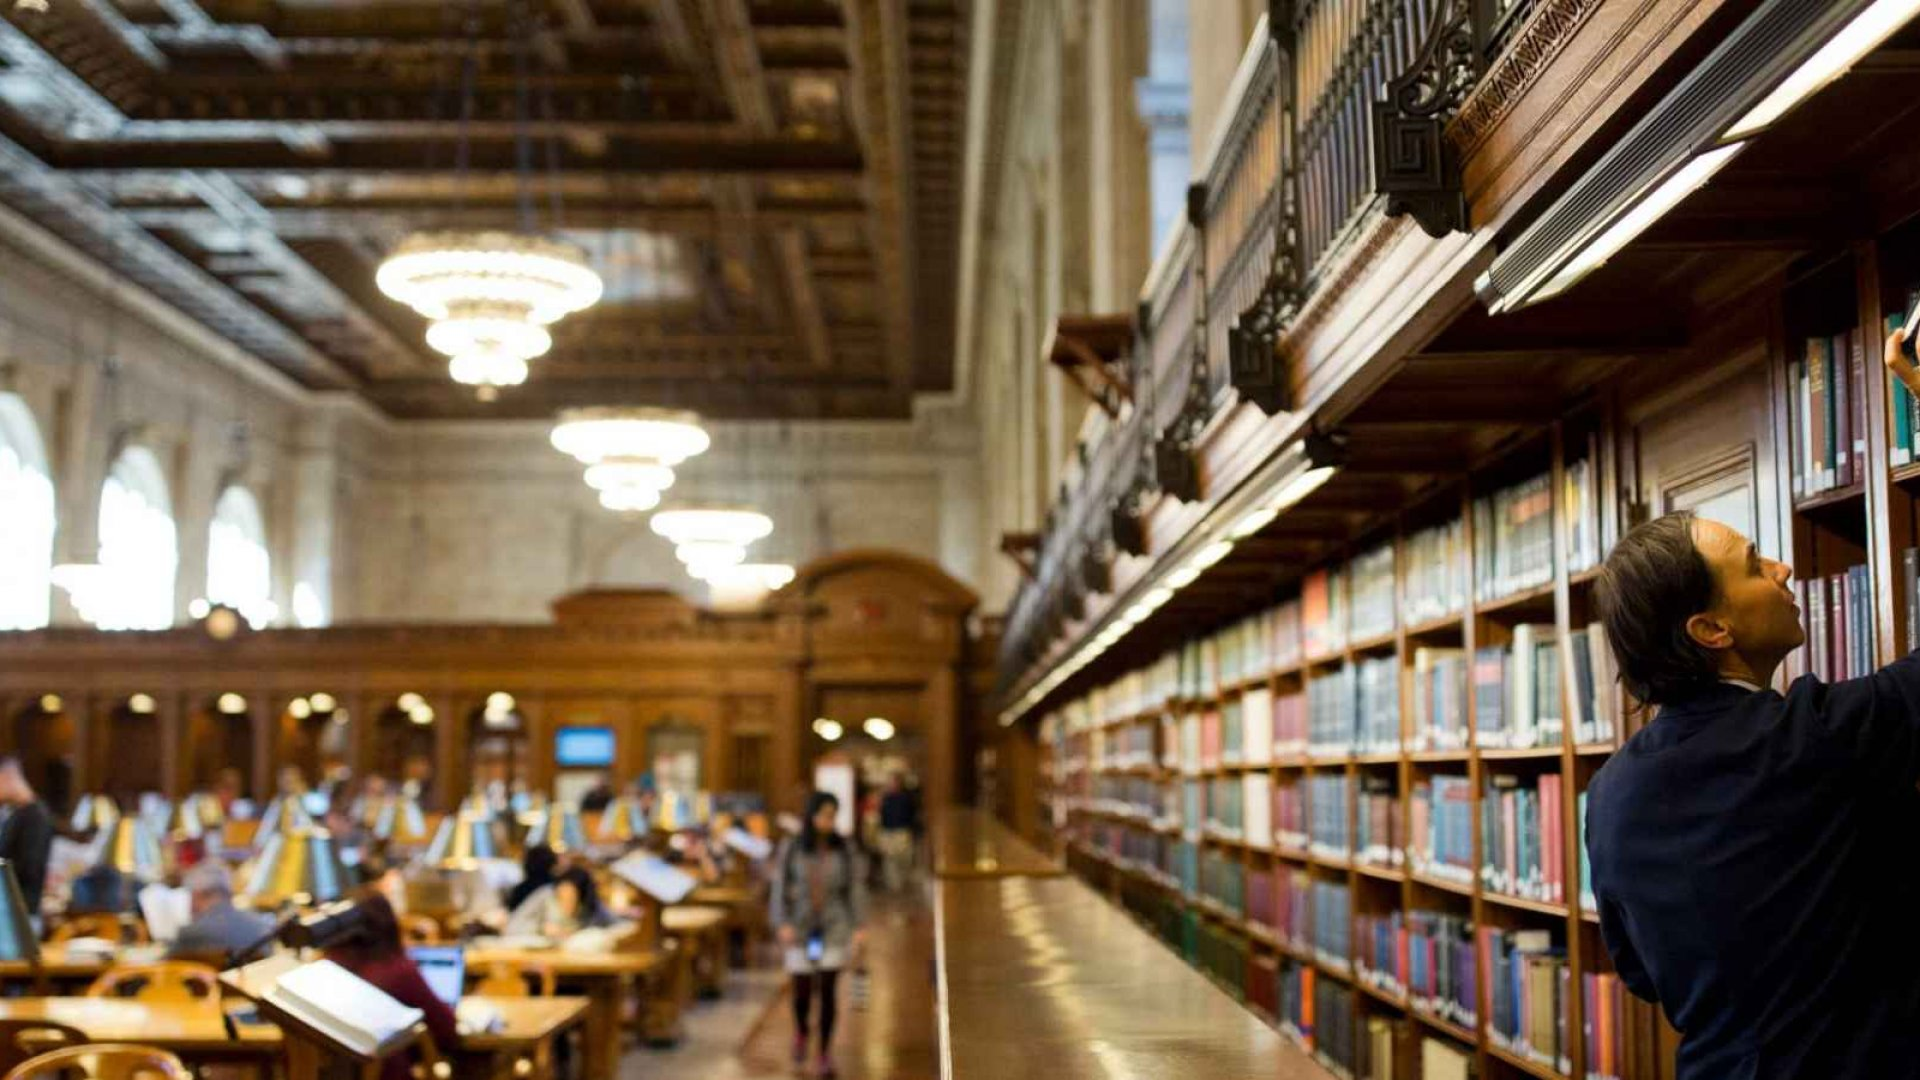 The New York Public Library's Newly Renovated Reading Room Is the Coolest Thing You'll See Today